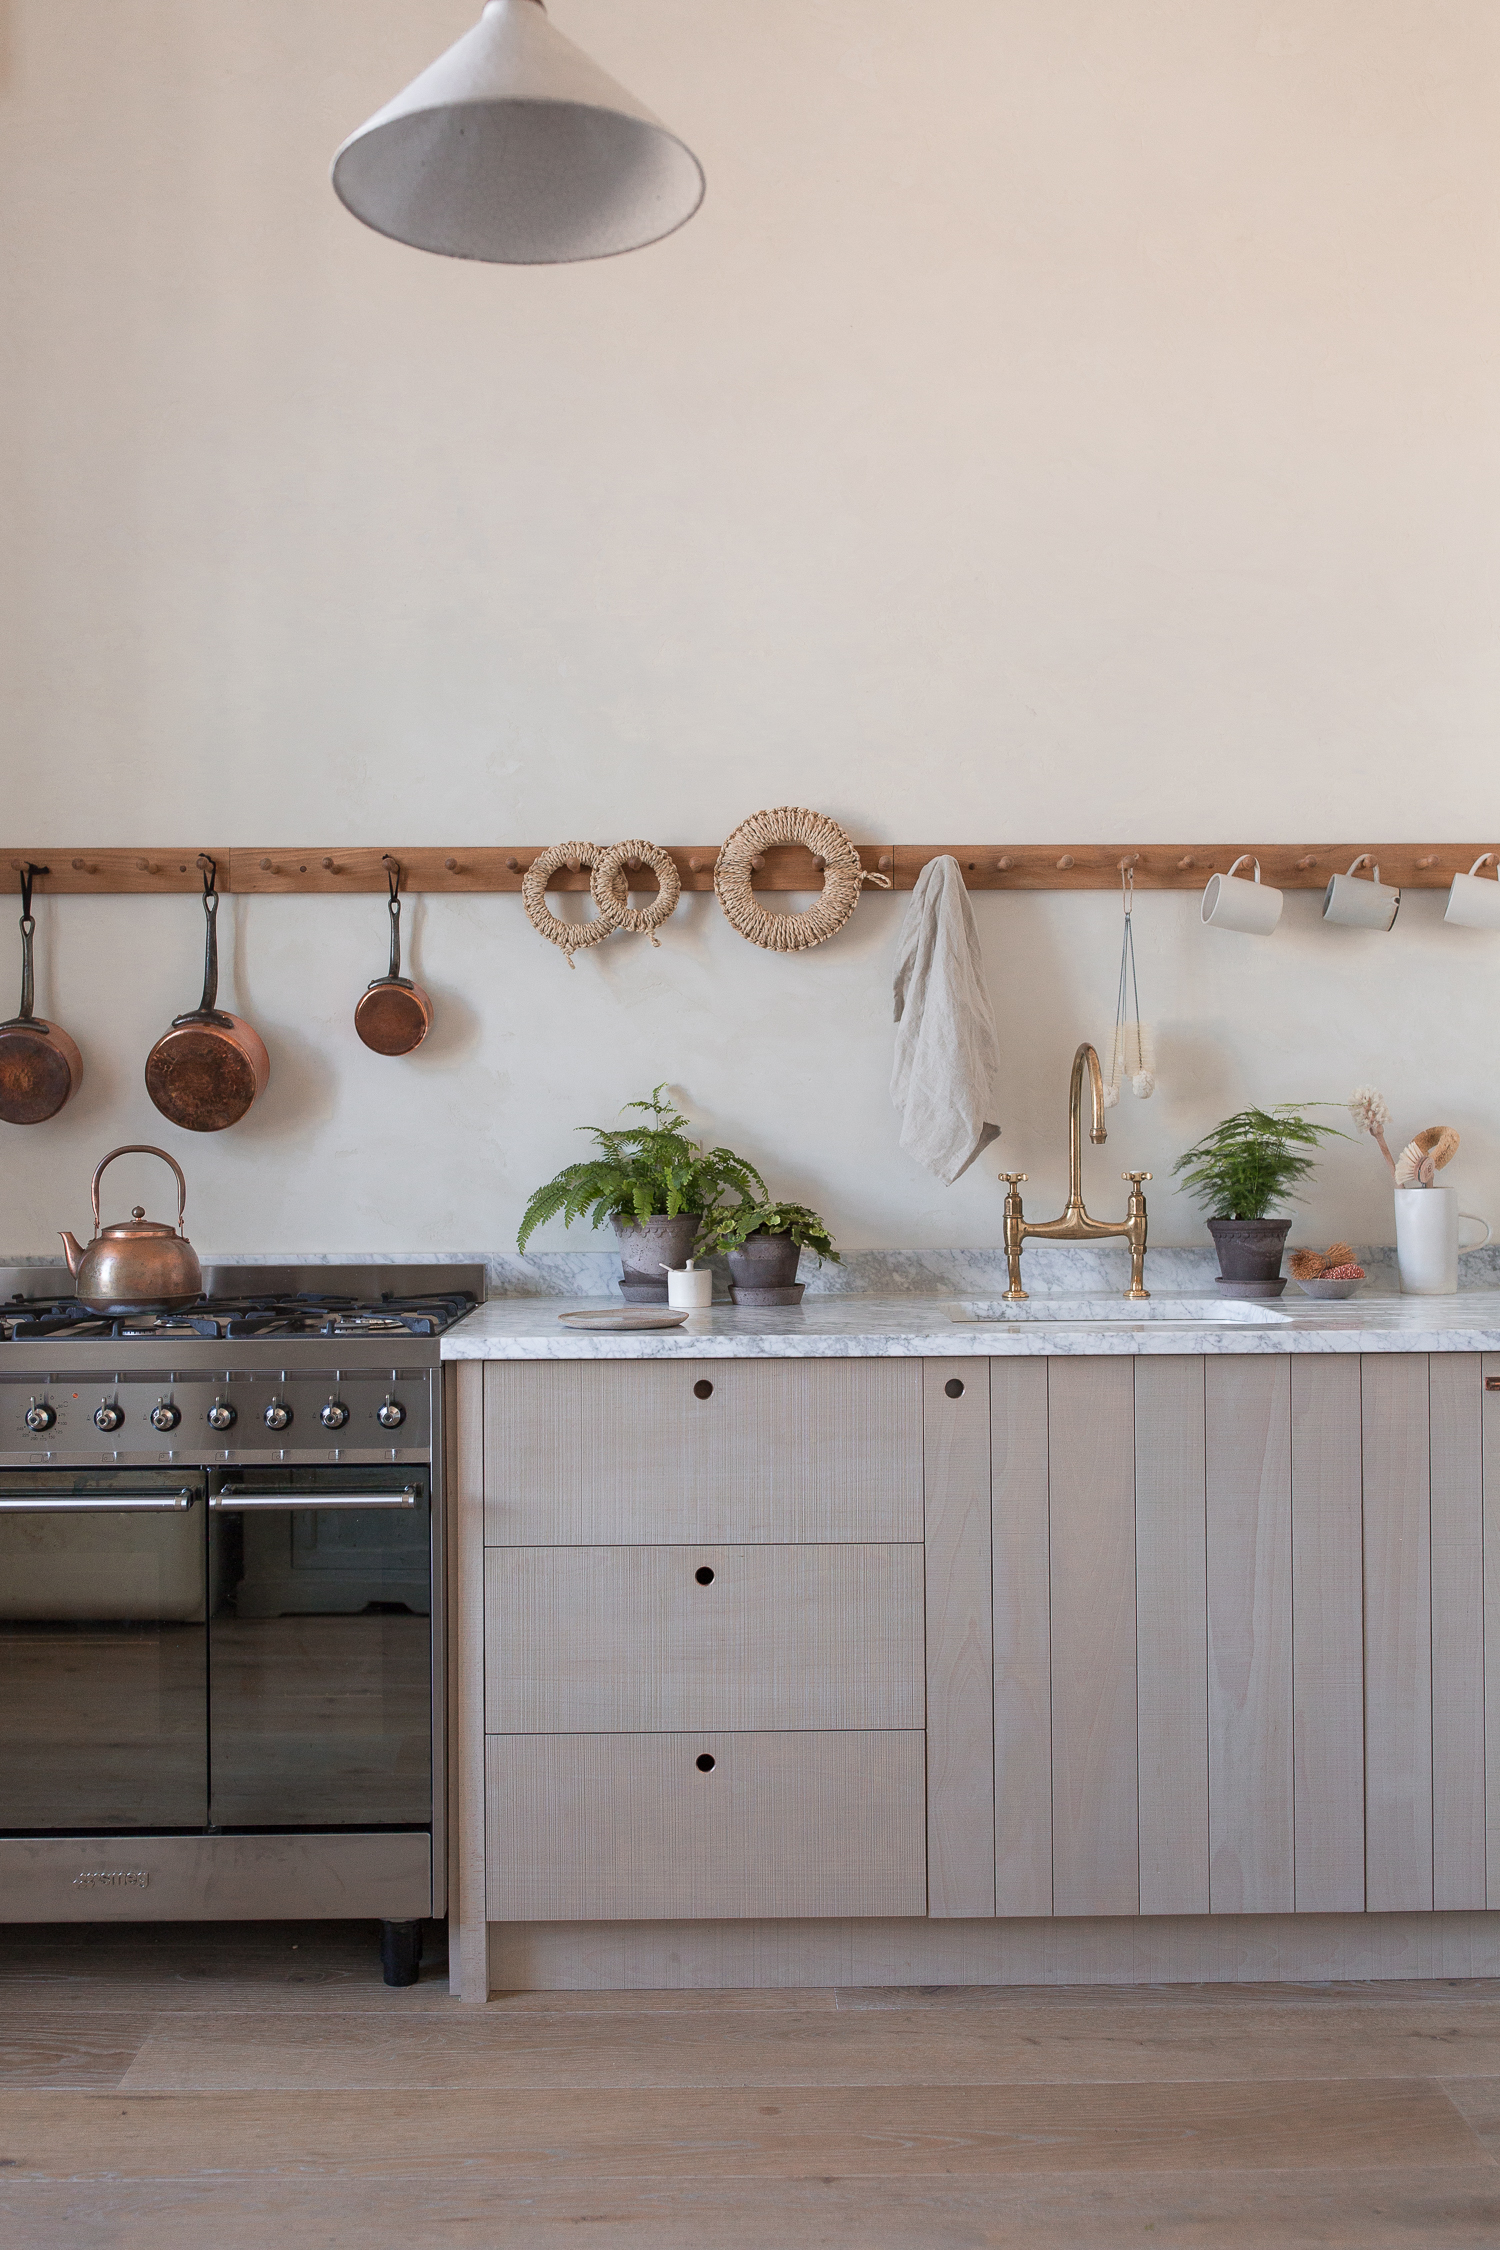 3. Photography Credit to Ingredients LDN - The Ingredients LDN Kitchen by deVOL - Low-Res.jpg